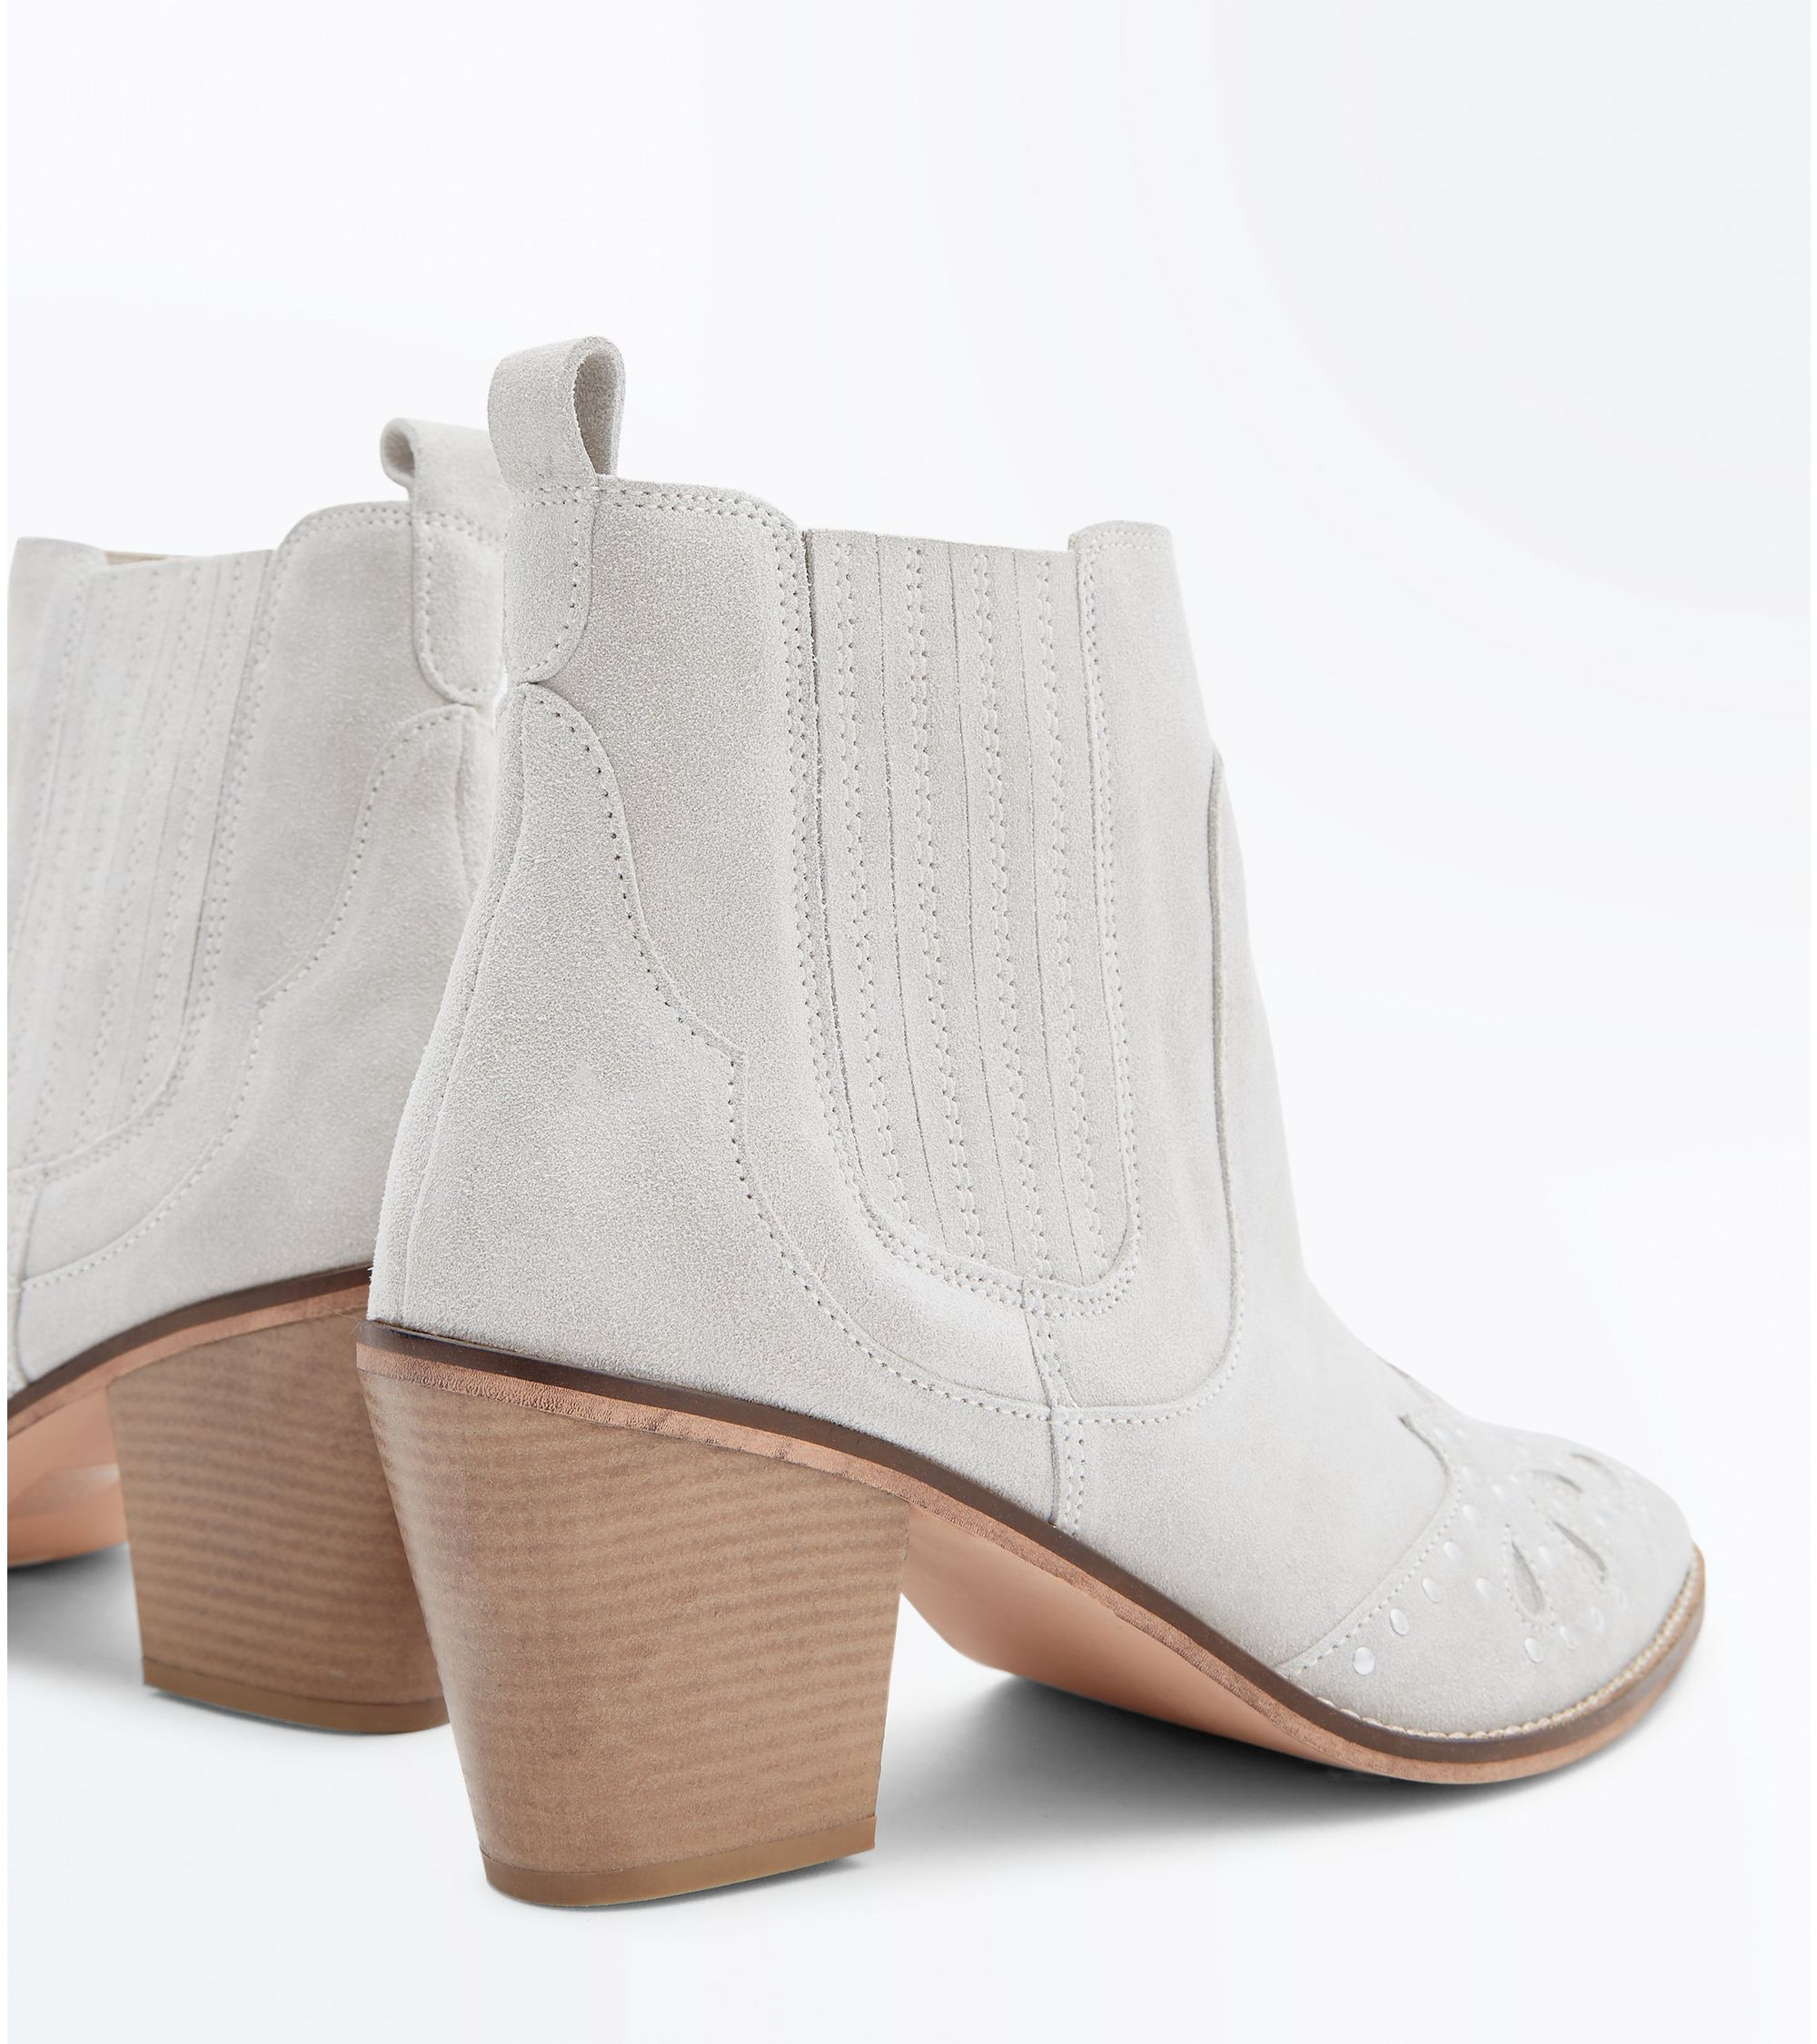 98d86d40aa6 Chloe's Finds Wide Fit Cream Suede Studded Western Boots